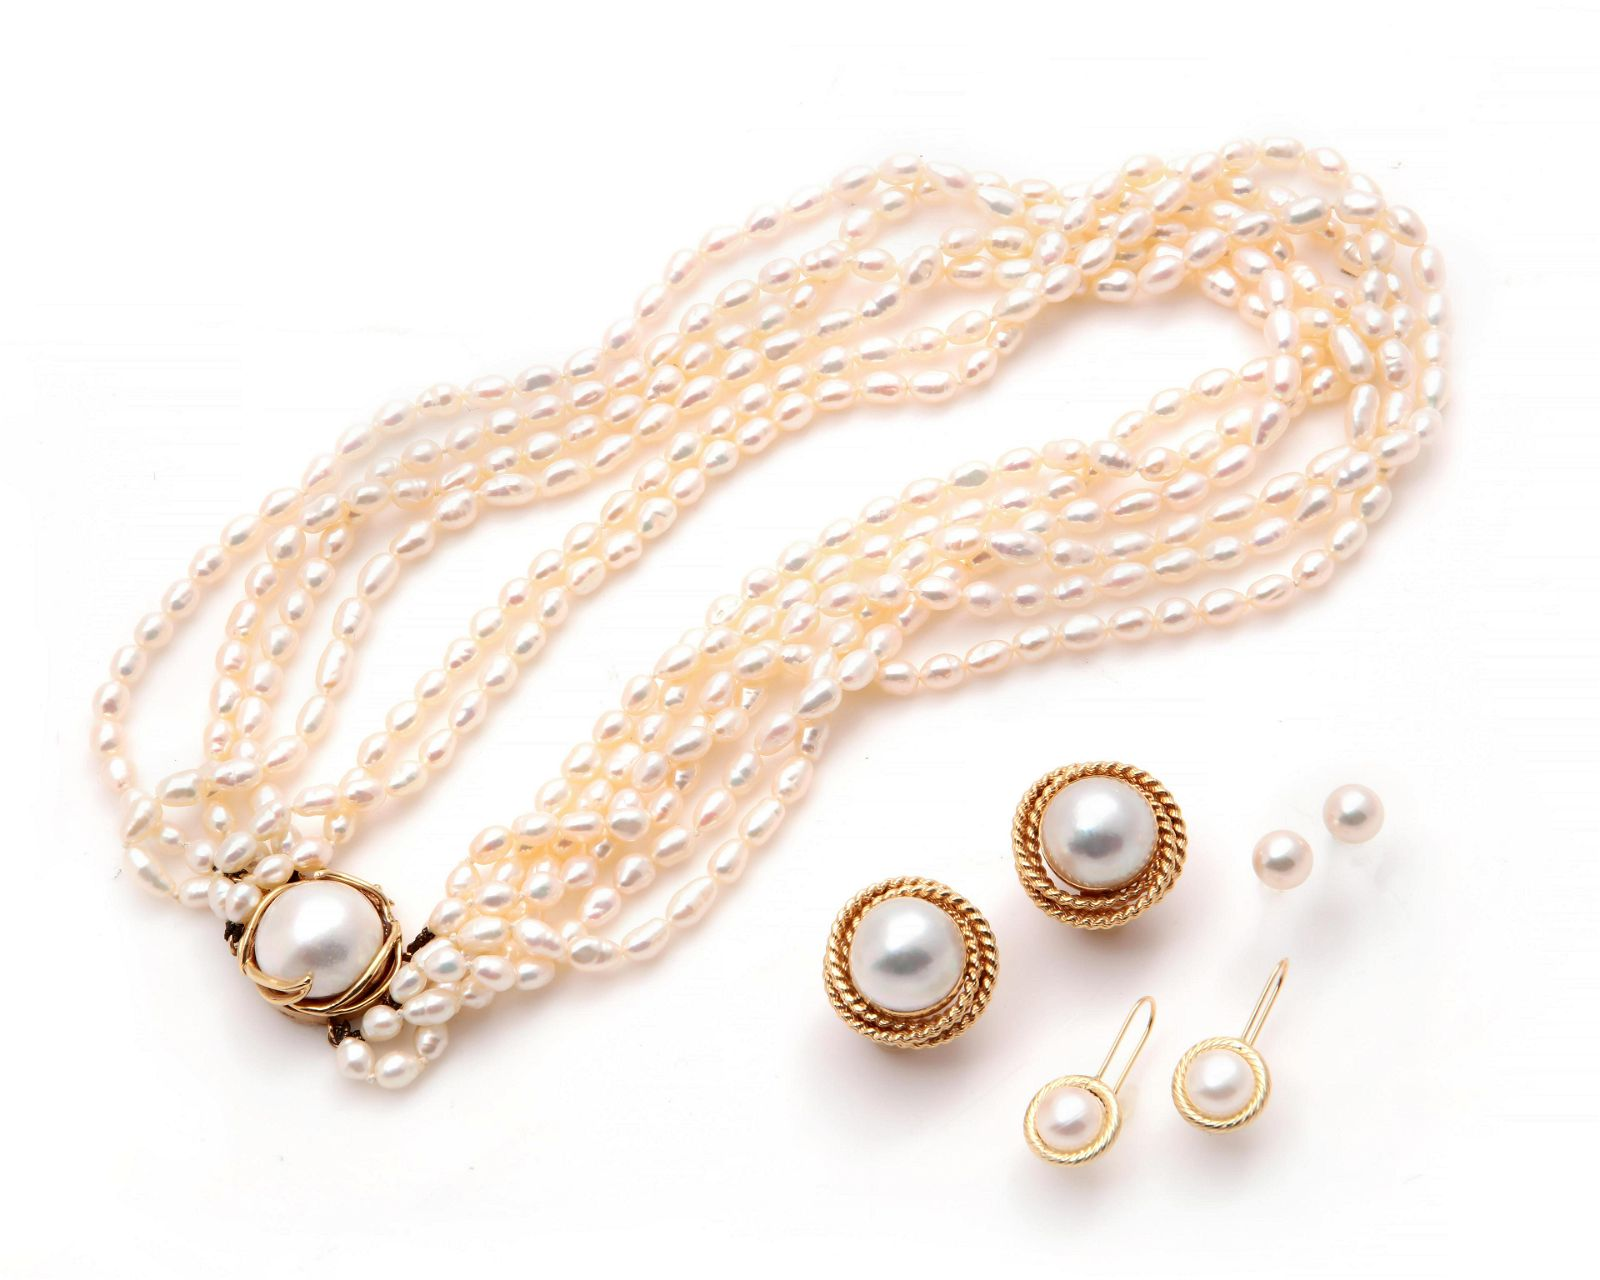 Seven pieces of cultured pearl & 14k gold jewelry